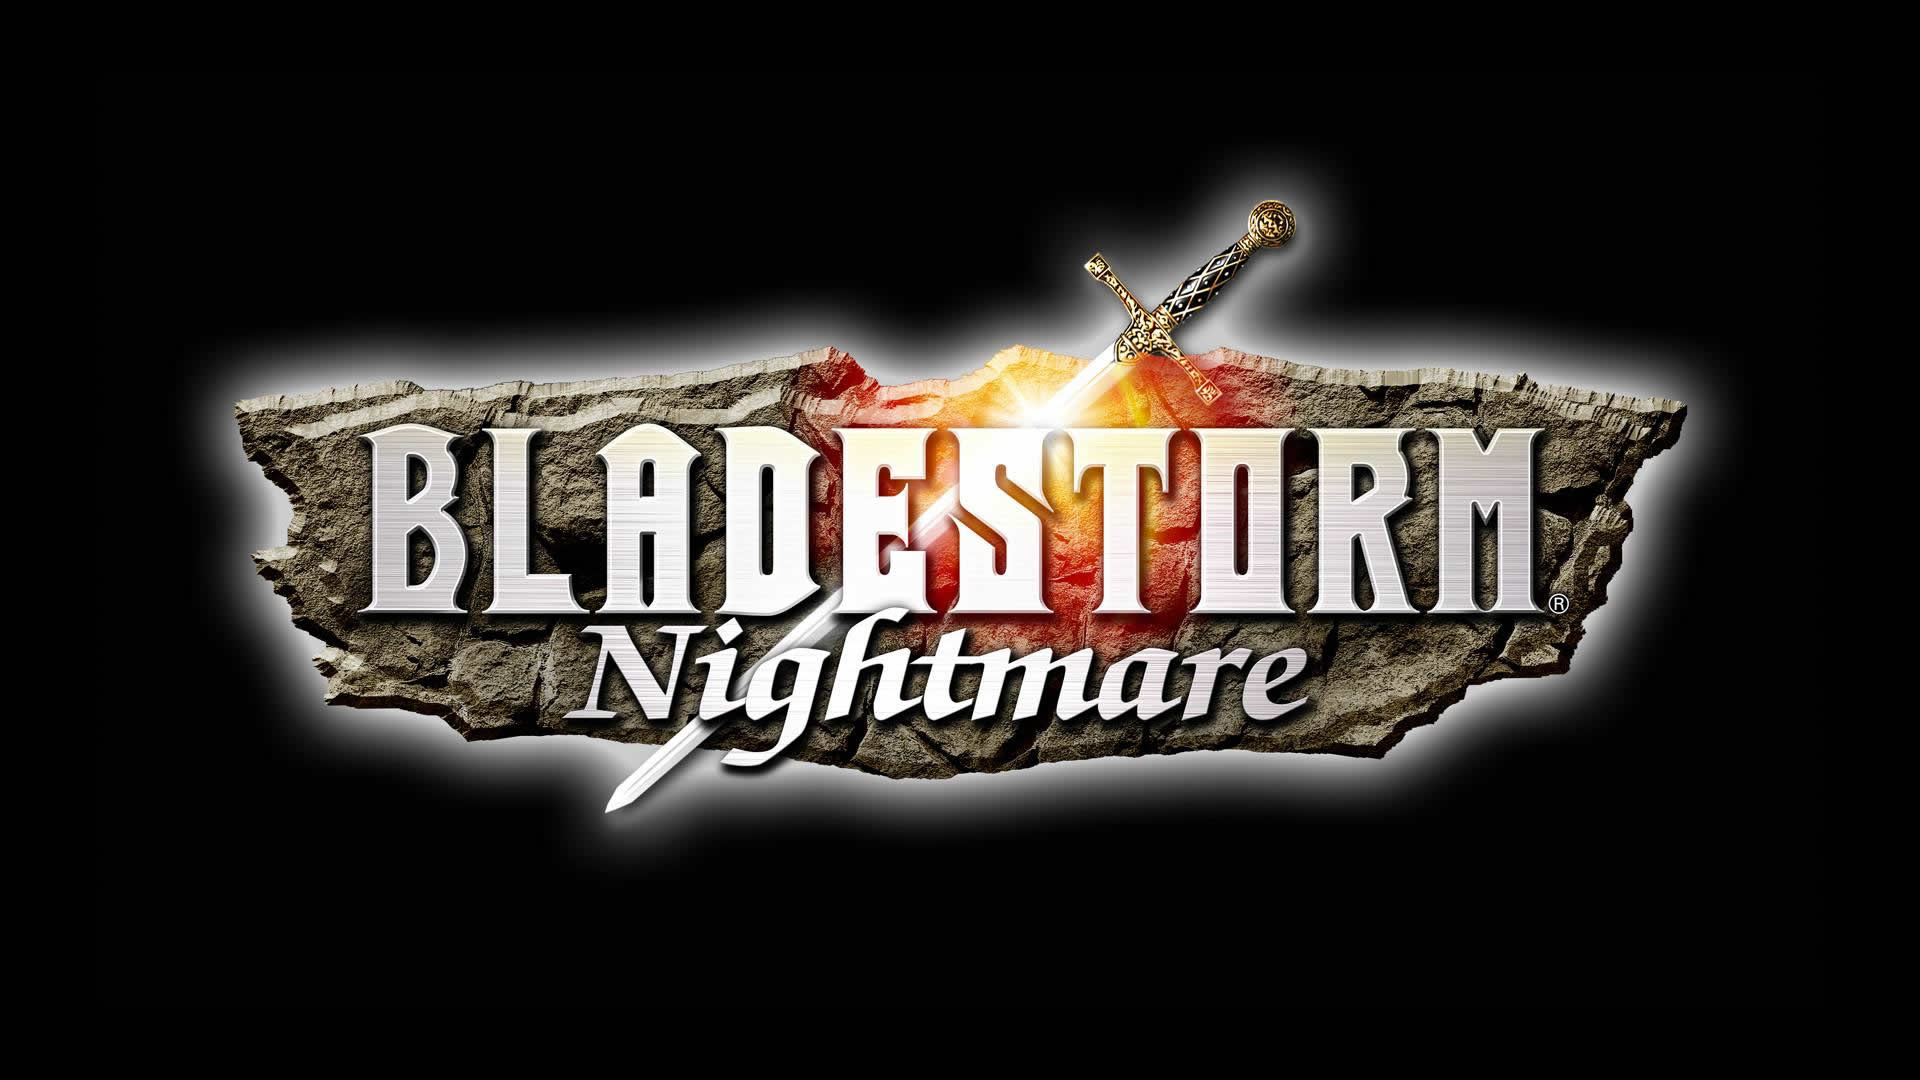 http://playstation4.gaming-universe.org/screens/news_2014-10-23_bladestorm-nightmare-announcement.jpg